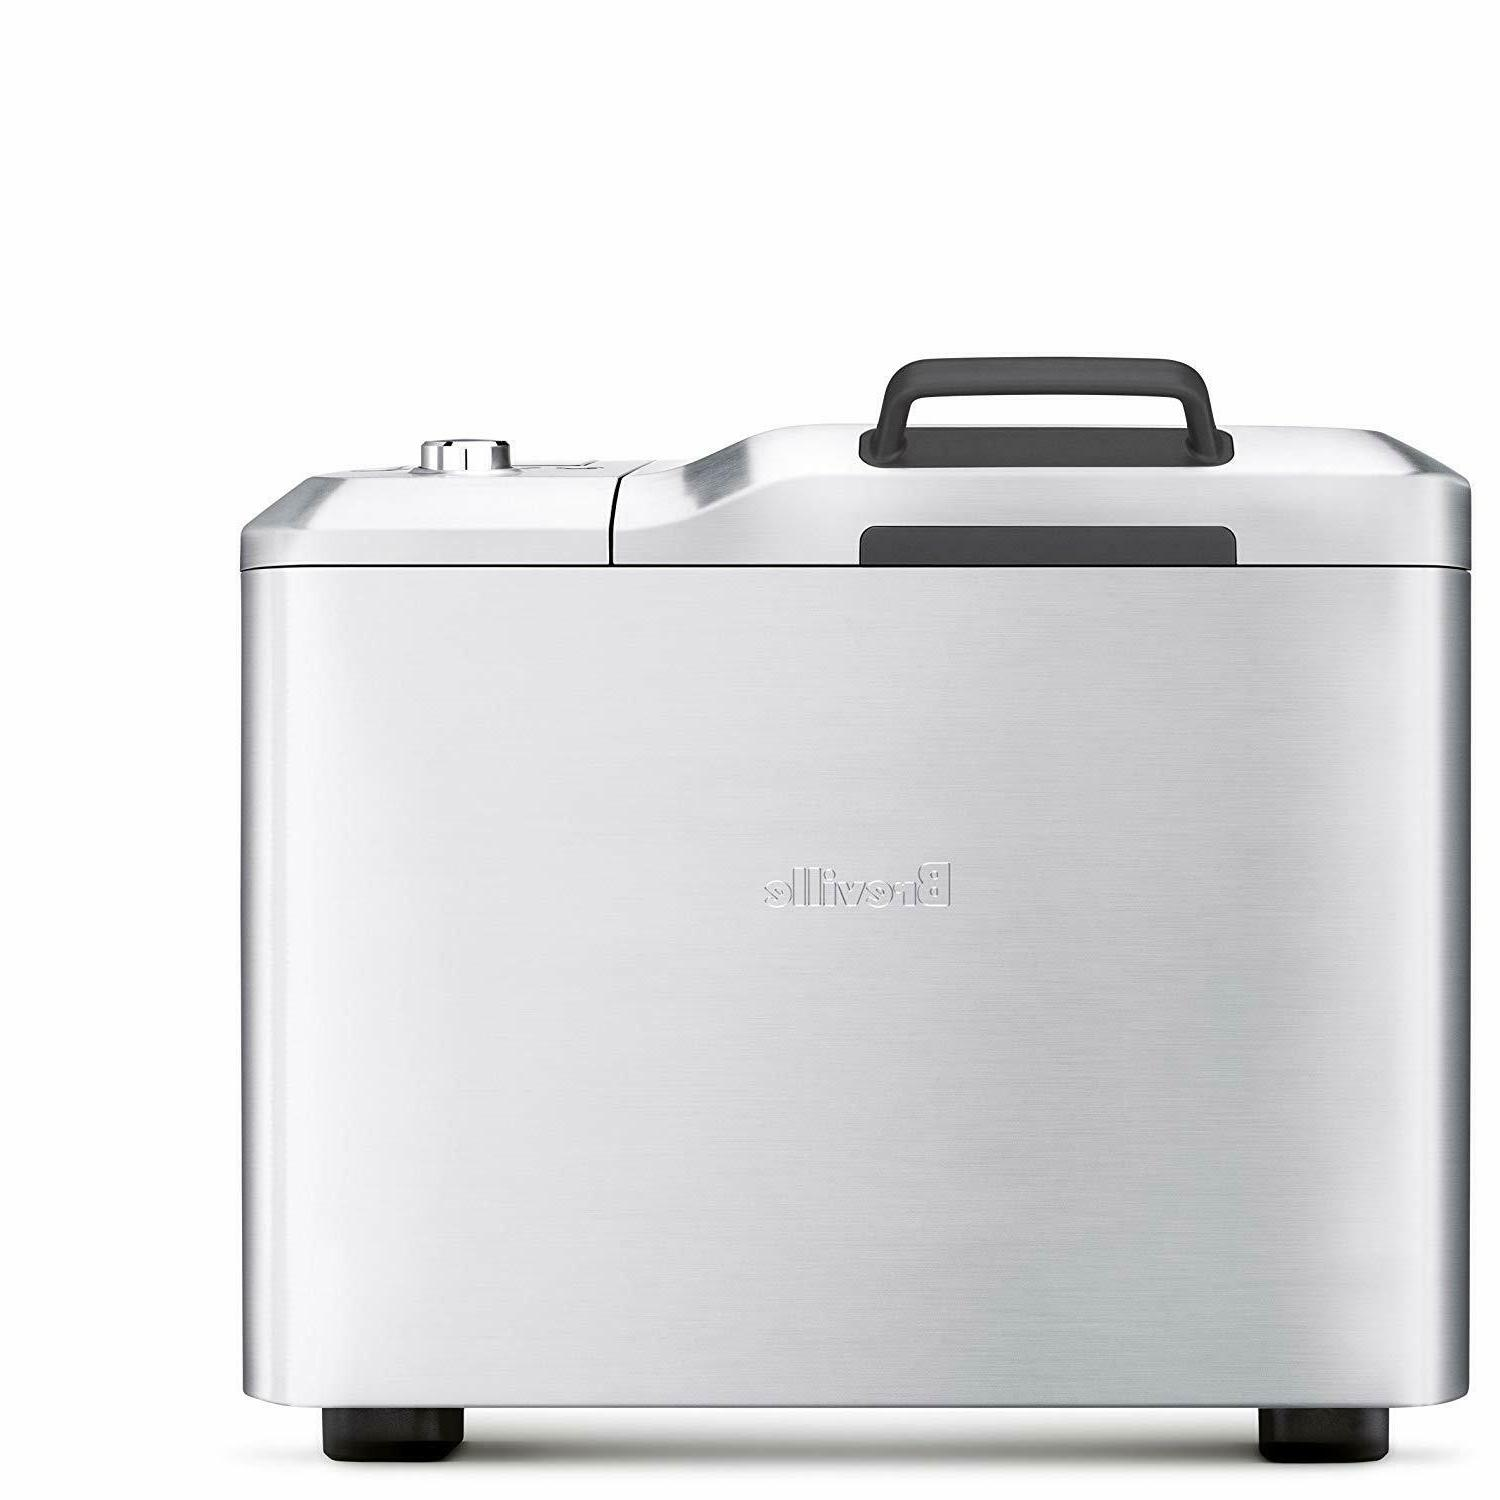 Breville The Bread with Fruit and Nut